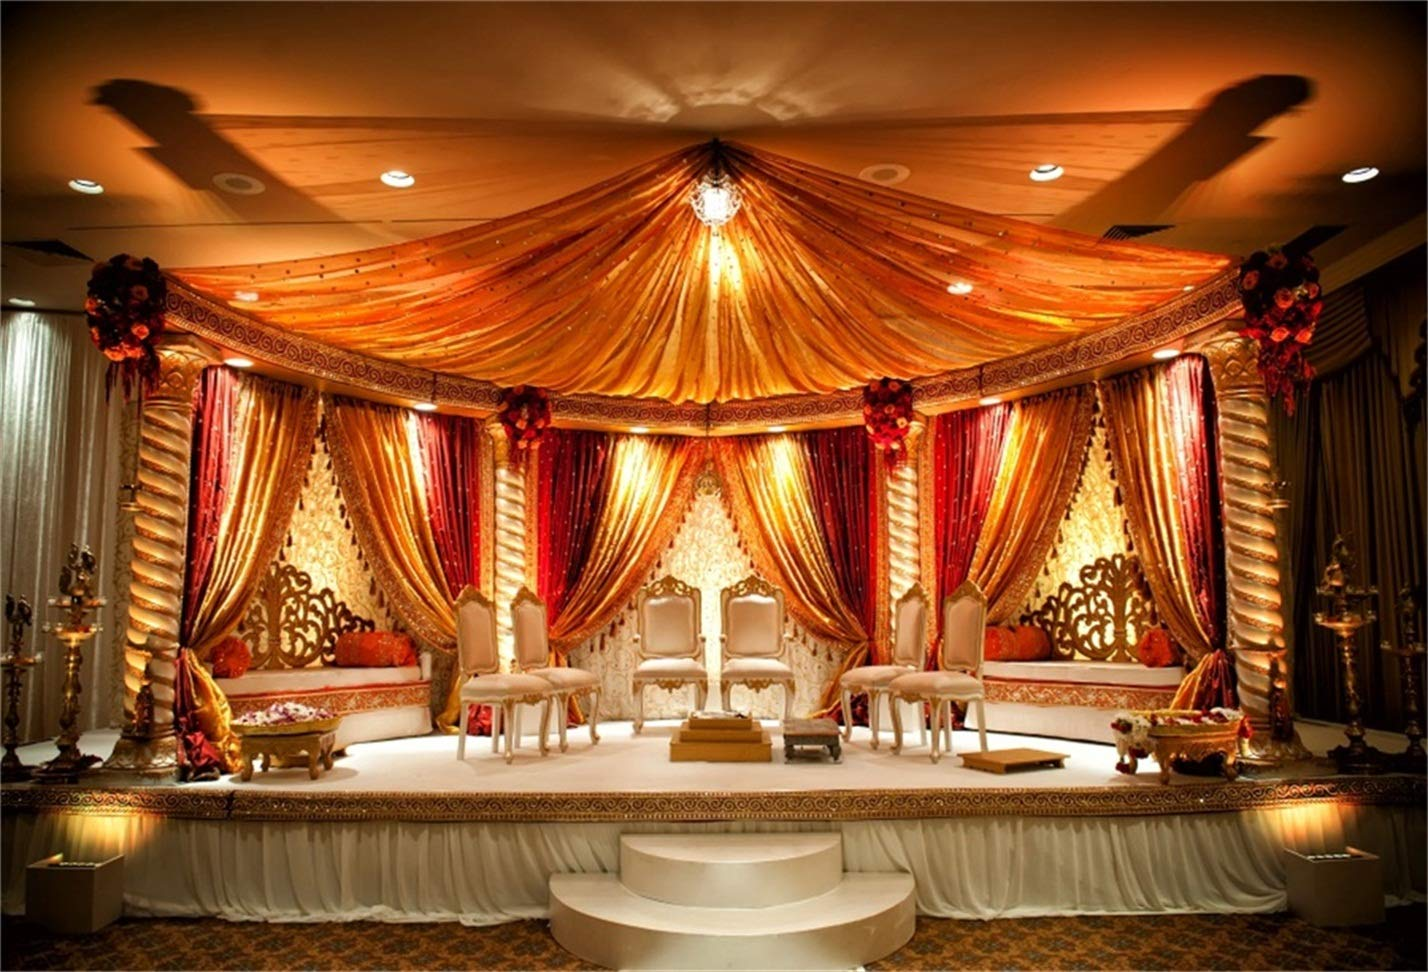 Csfoto 7x5ft Background For Indian Wedding Mandap Photography Backdrop Luxury Wedding Ceremony Banquet Room Interior Engagement Marriage Marquee